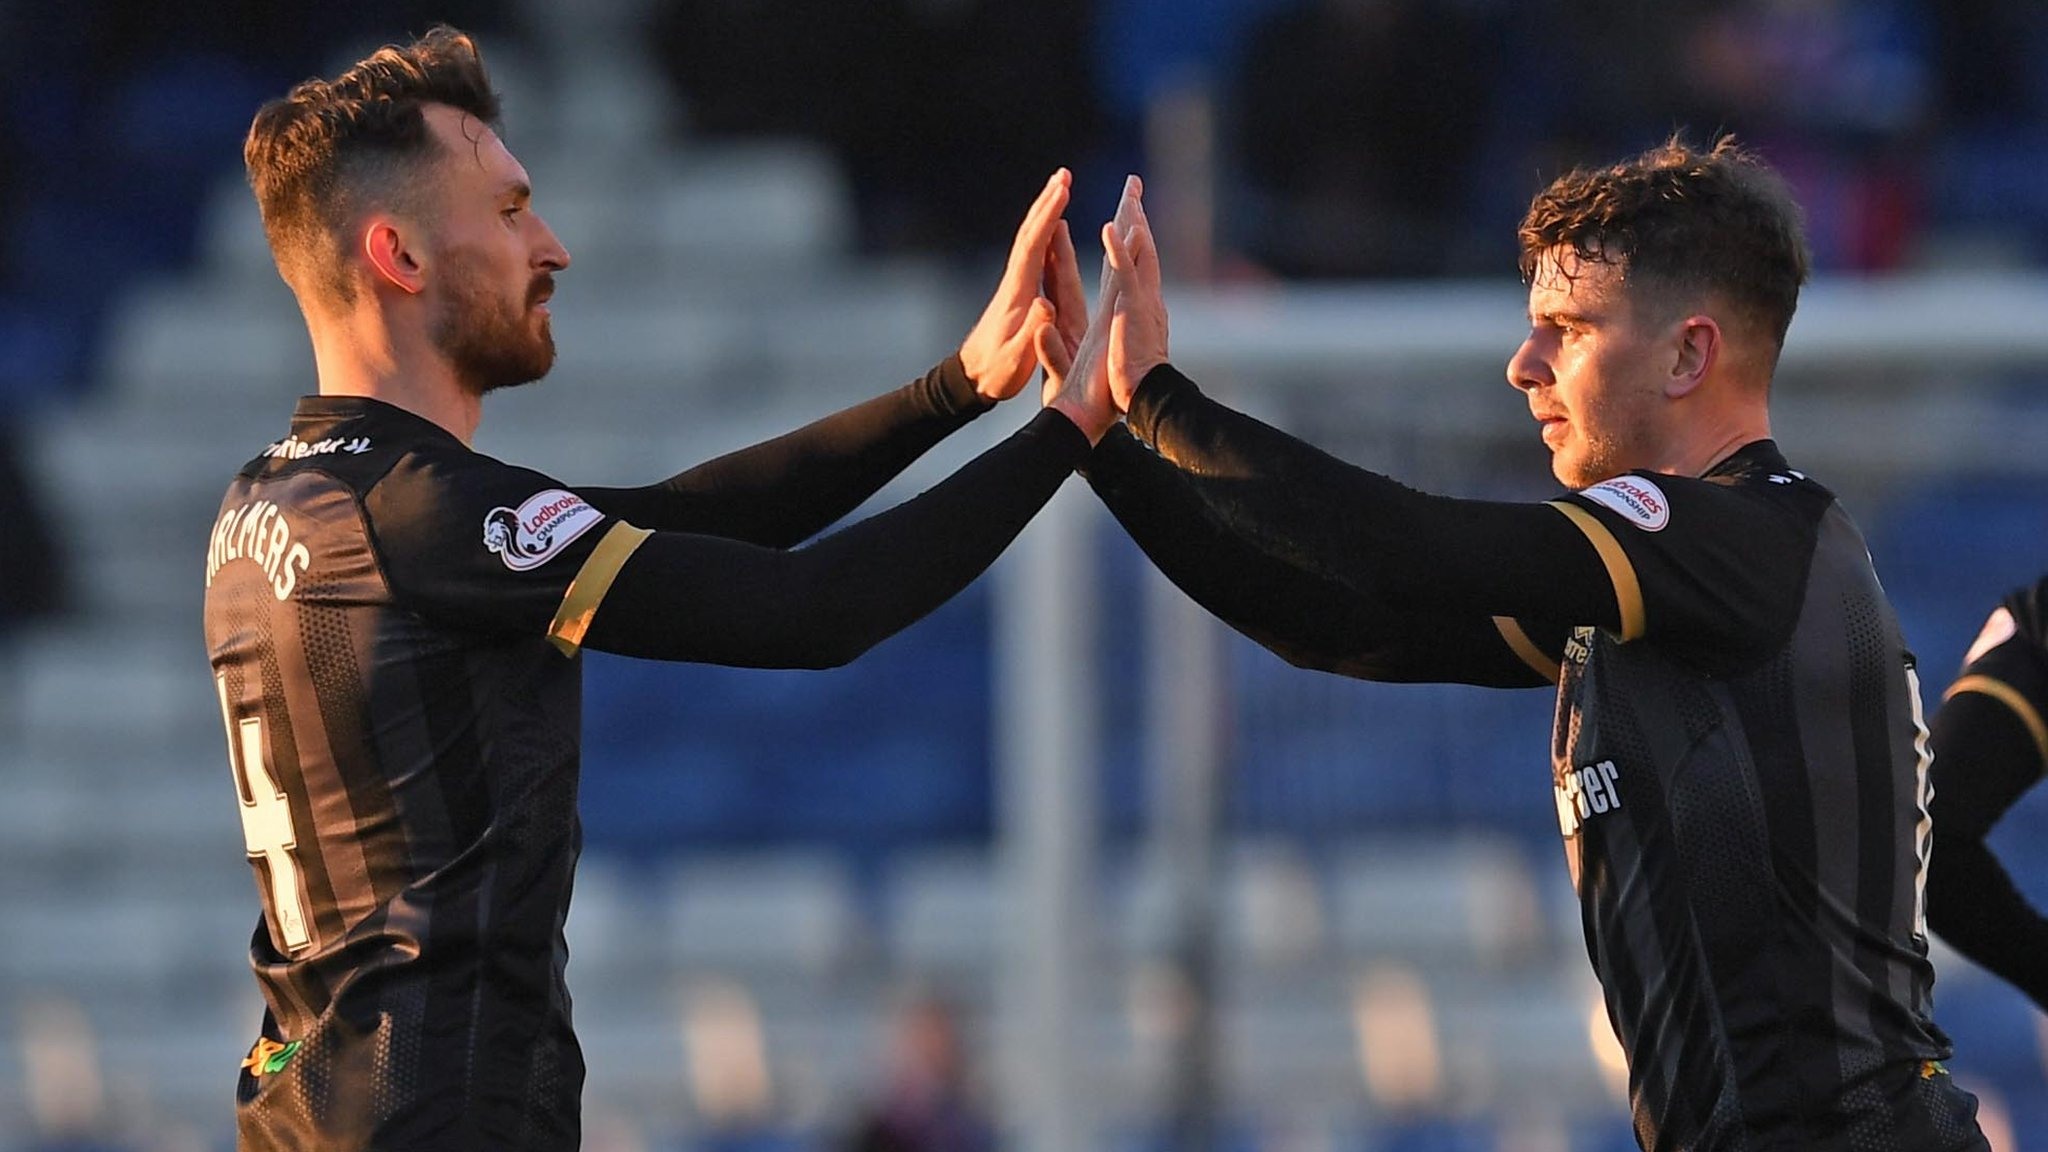 Inverness CT 4-0 East Kilbride: Highlanders cruise into fifth round of Scottish Cup